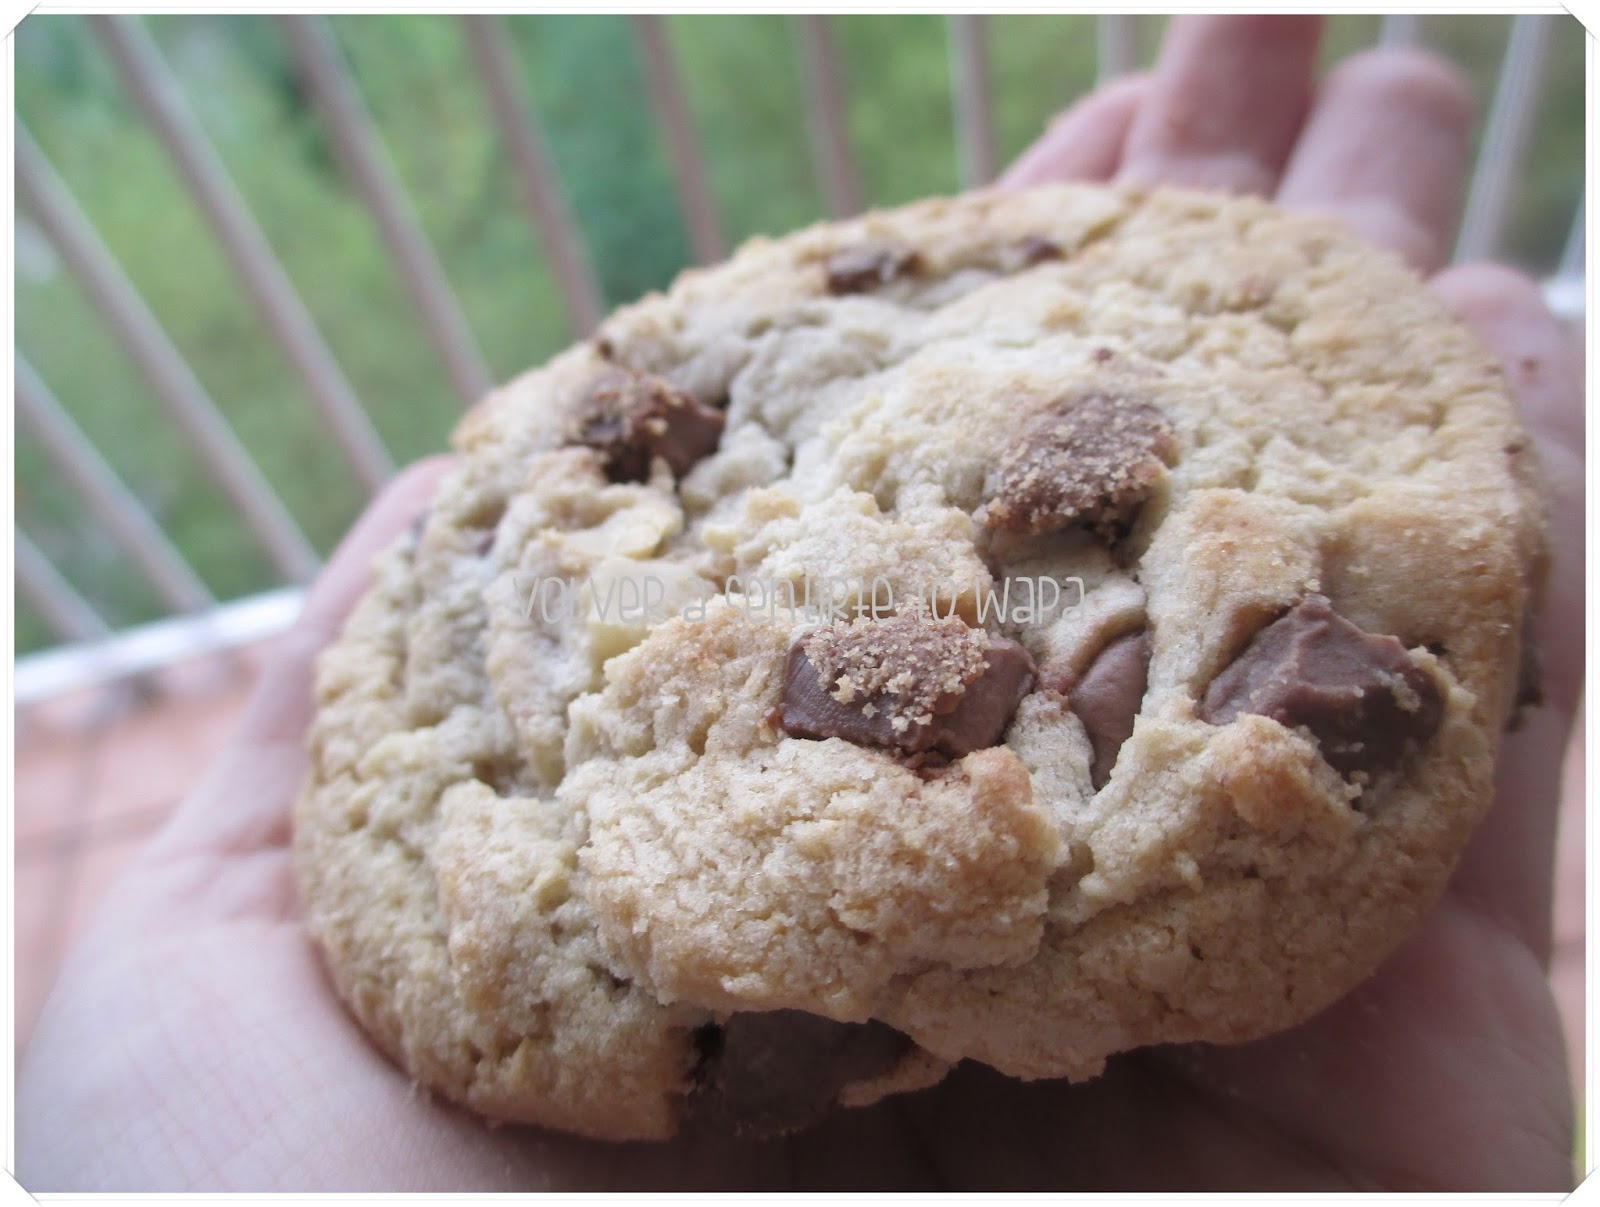 degustabox 'Vuelta al Cole' - Agosto 2014 - Cookies Pepperidge Farm